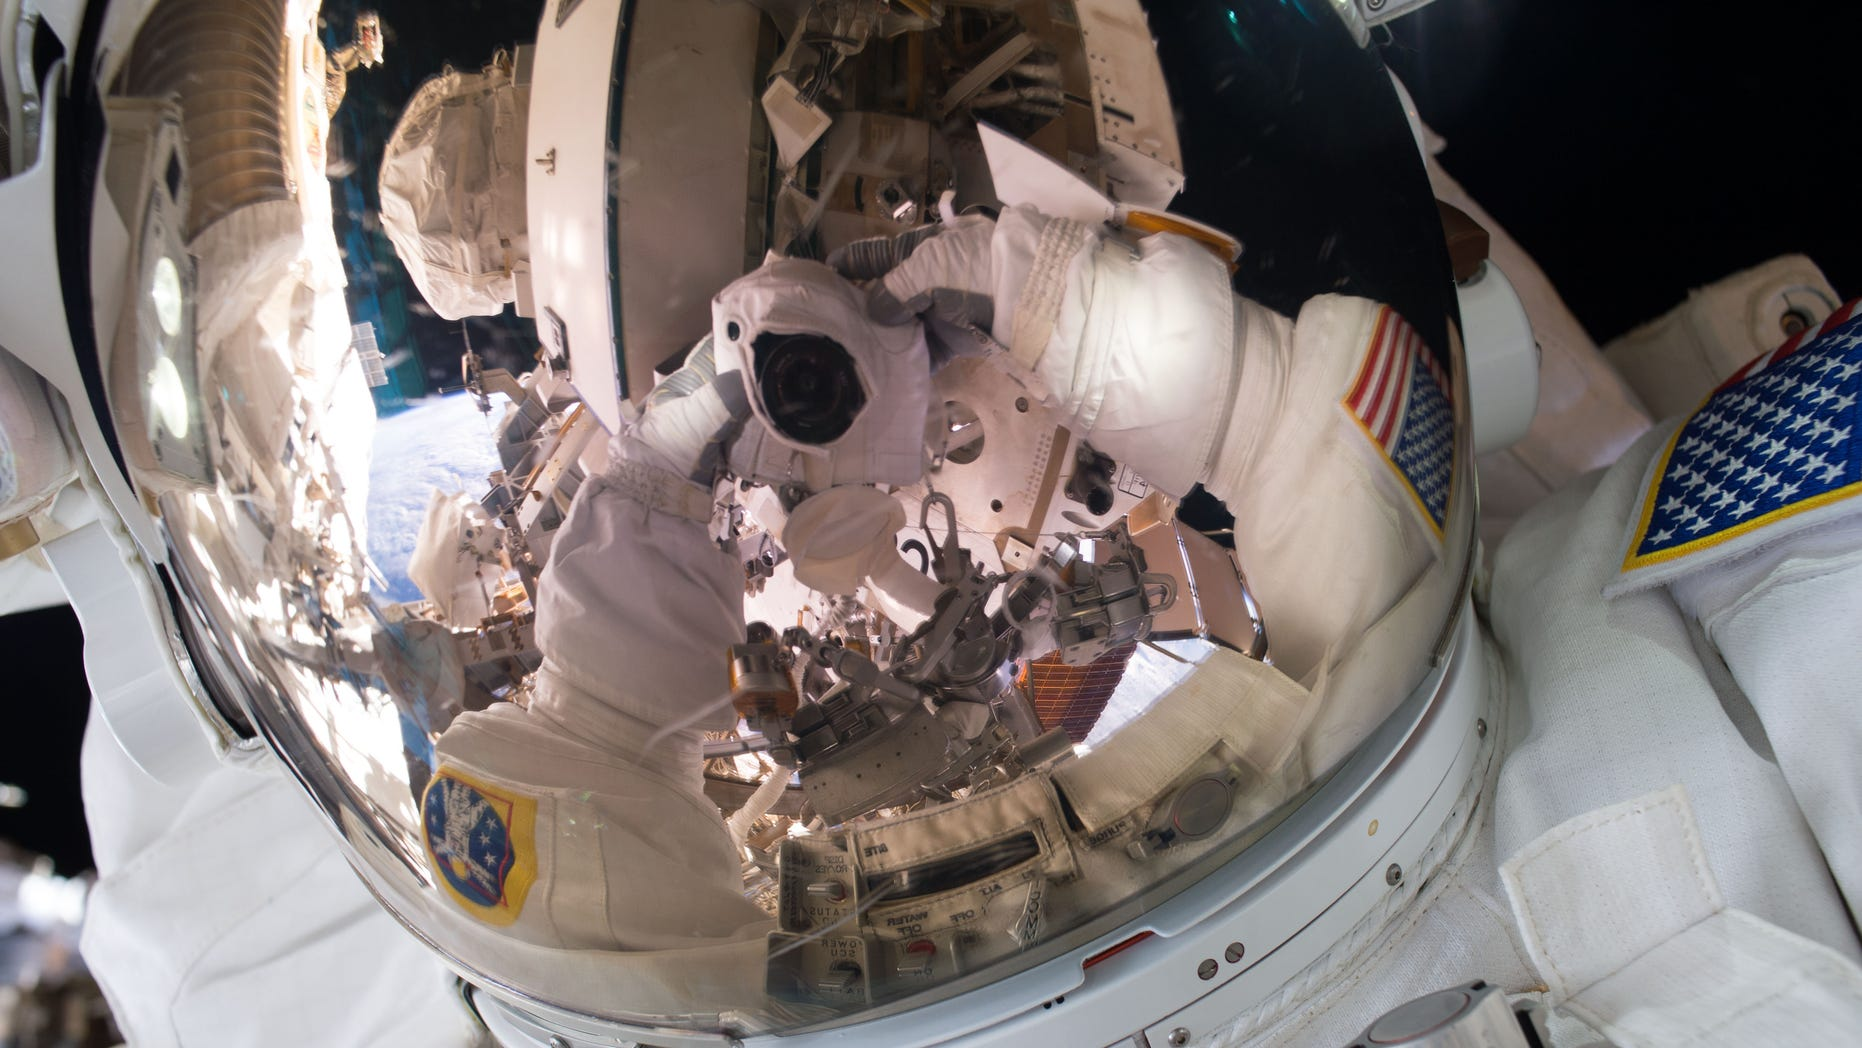 (NASA –Astronaut Scott Kelly takes a selfie during a spacewalk on October 28, 2015)